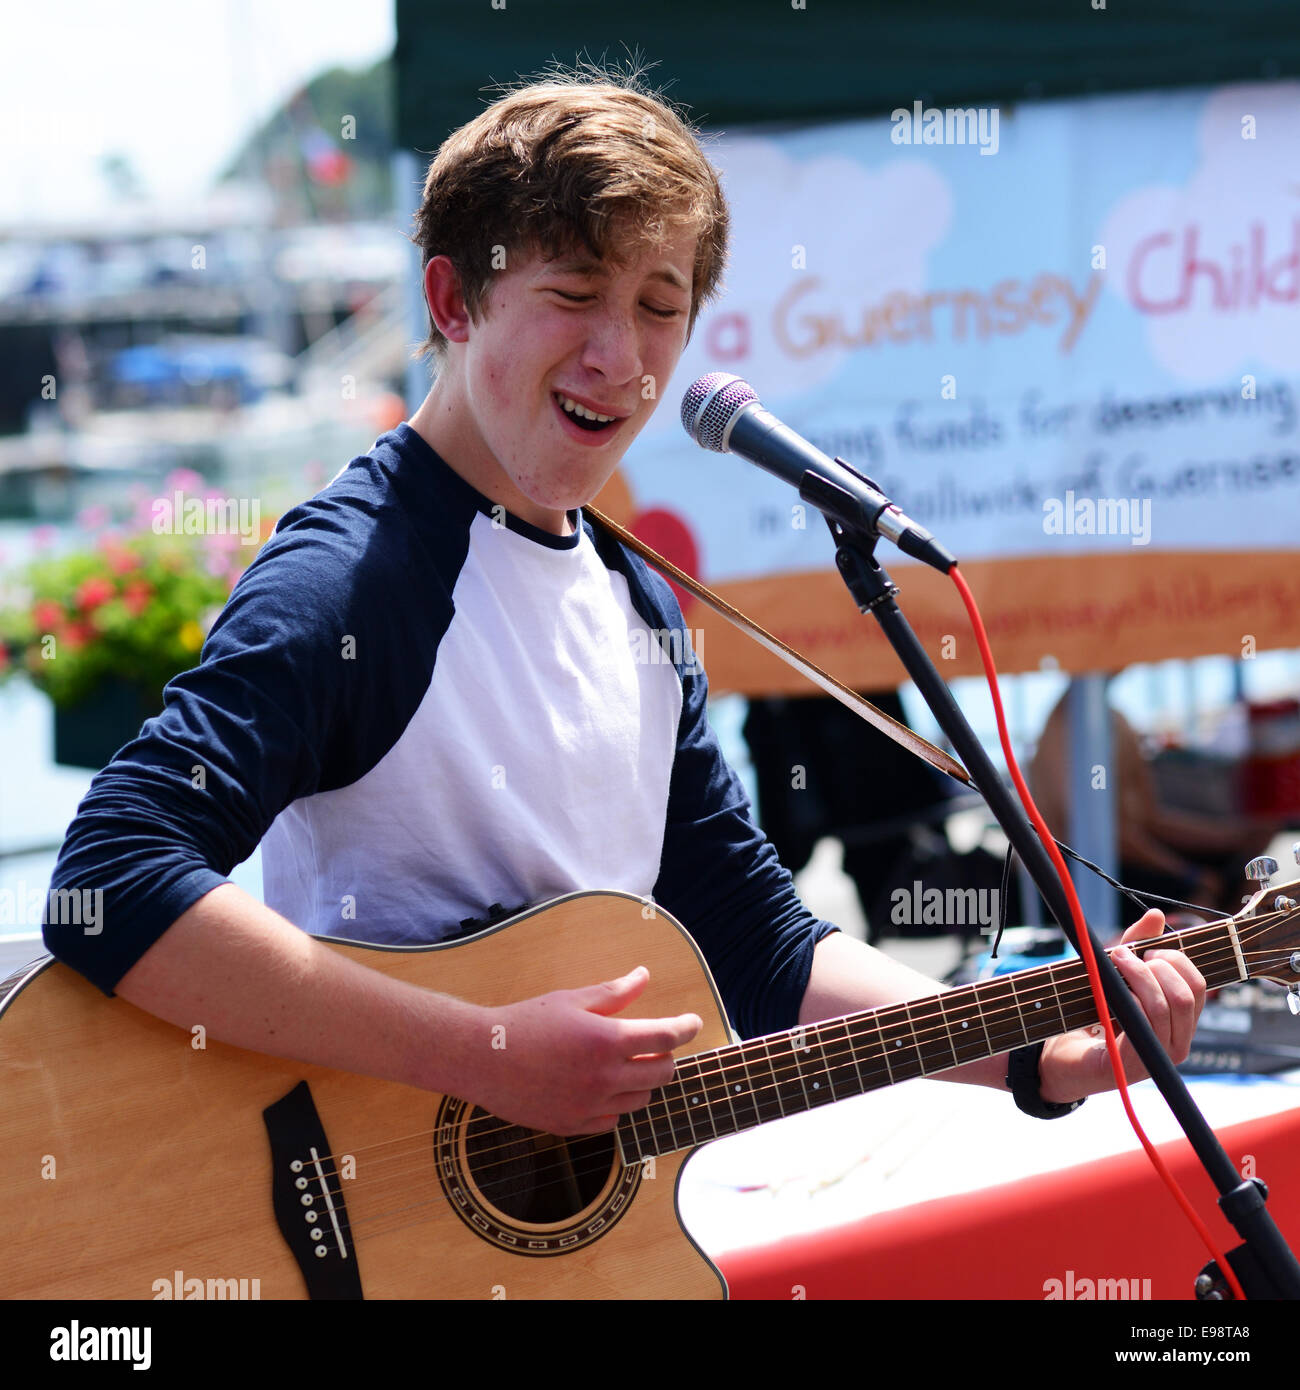 Youth playing a guitar and singing outdoors - Stock Image